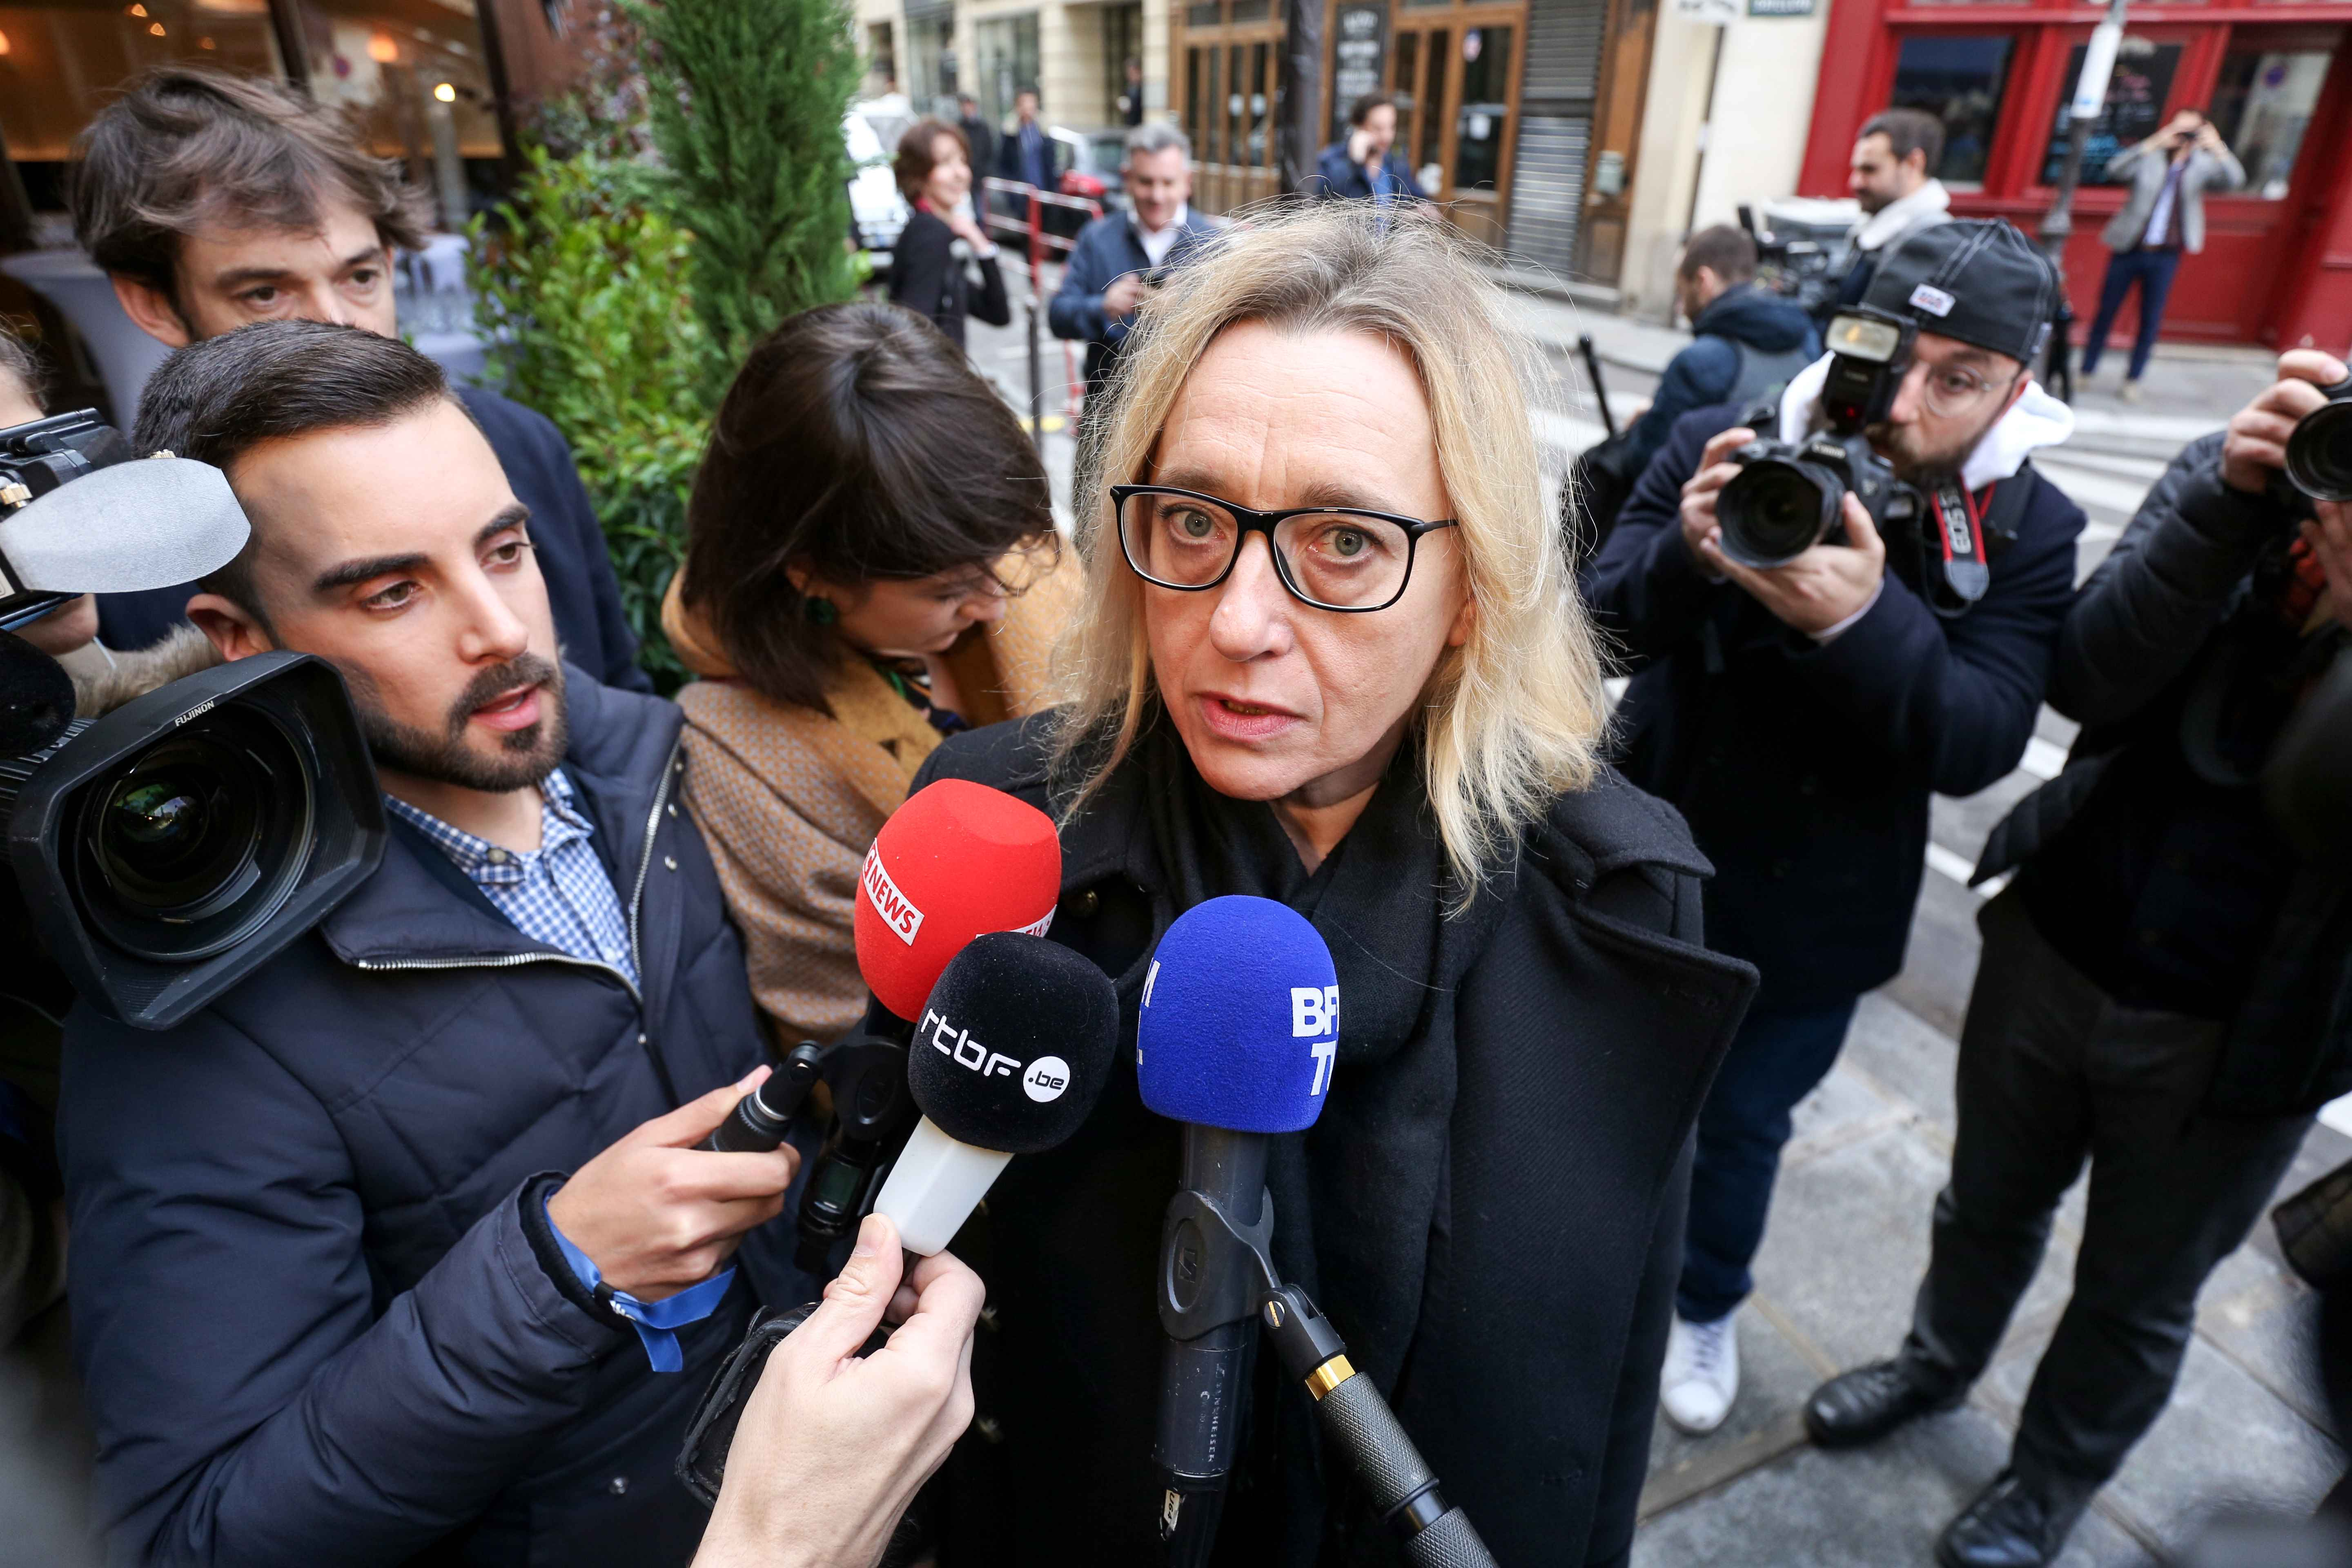 French author and member of the jury of the Prix Goncourt Virginie Despentes speaks to the press upon her arrival at the Drouant restaurant in Paris ahead of the announcement of the winner of the France's literary prize, the Prix Goncourt, on November 4, 2